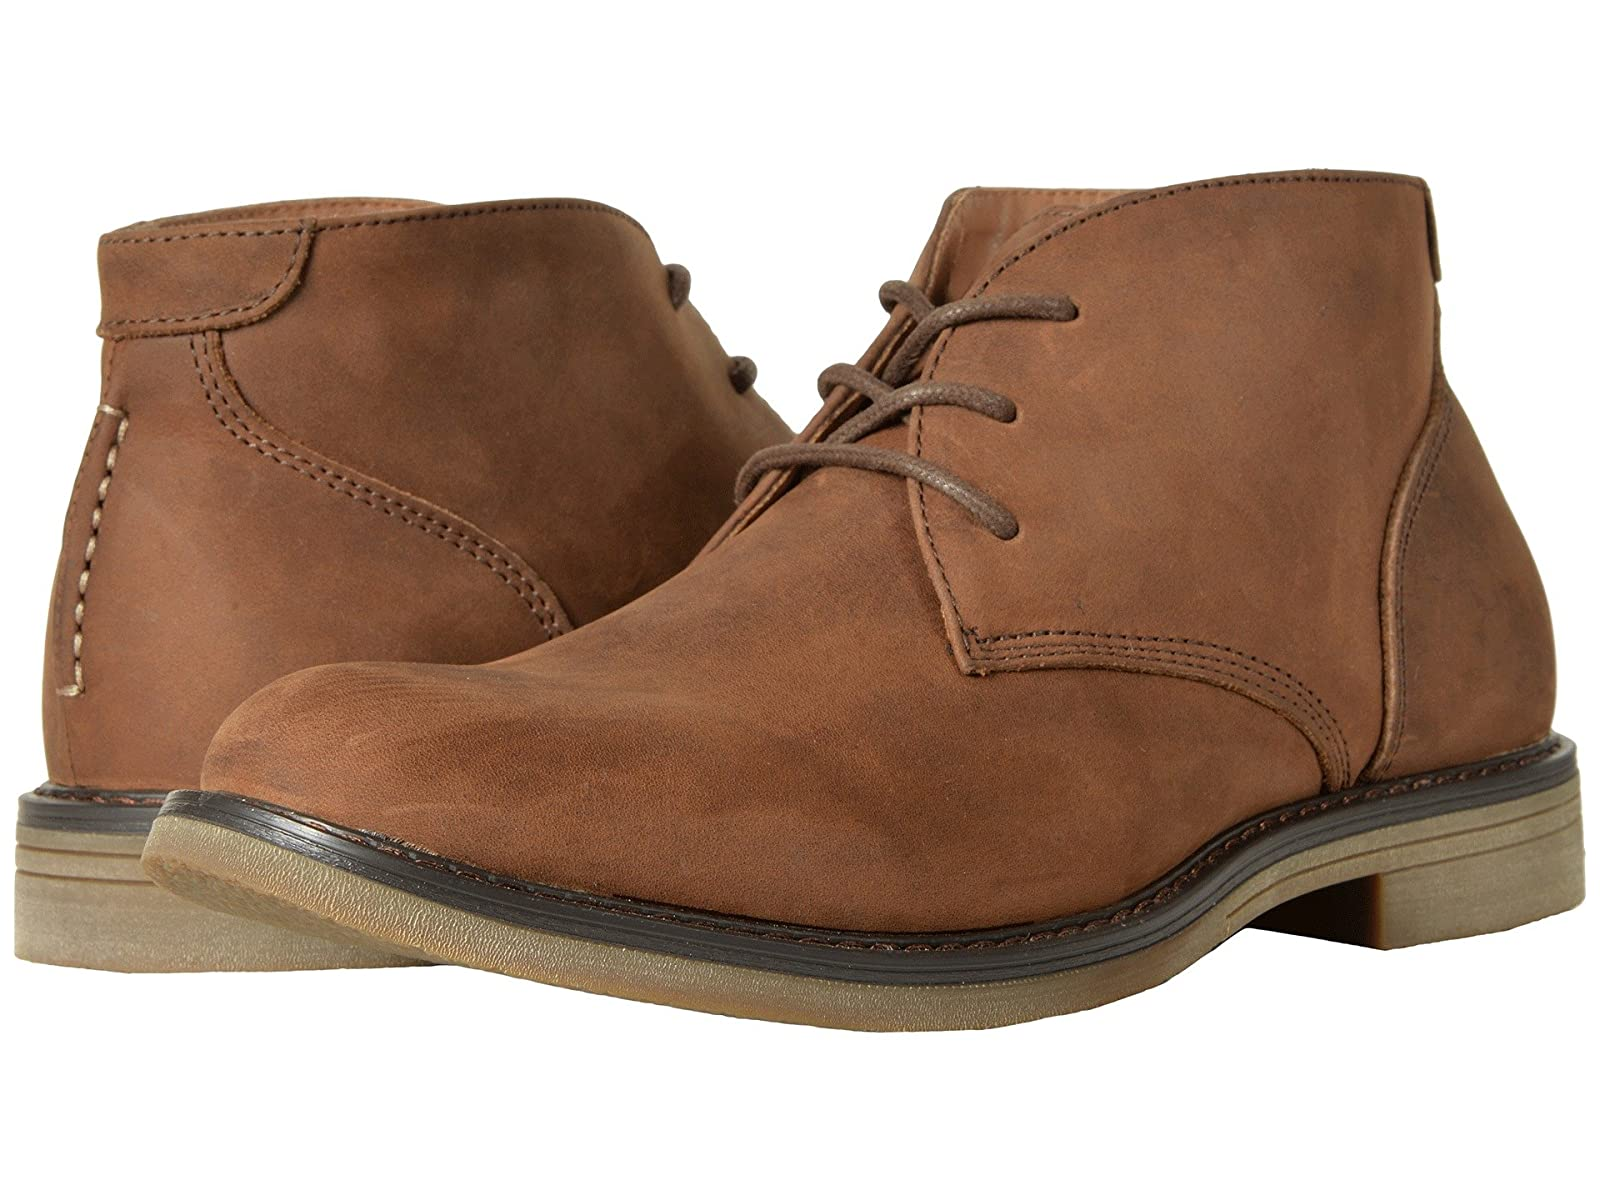 Nunn Bush Lancaster Plain Toe Chukka BootEconomical and quality shoes